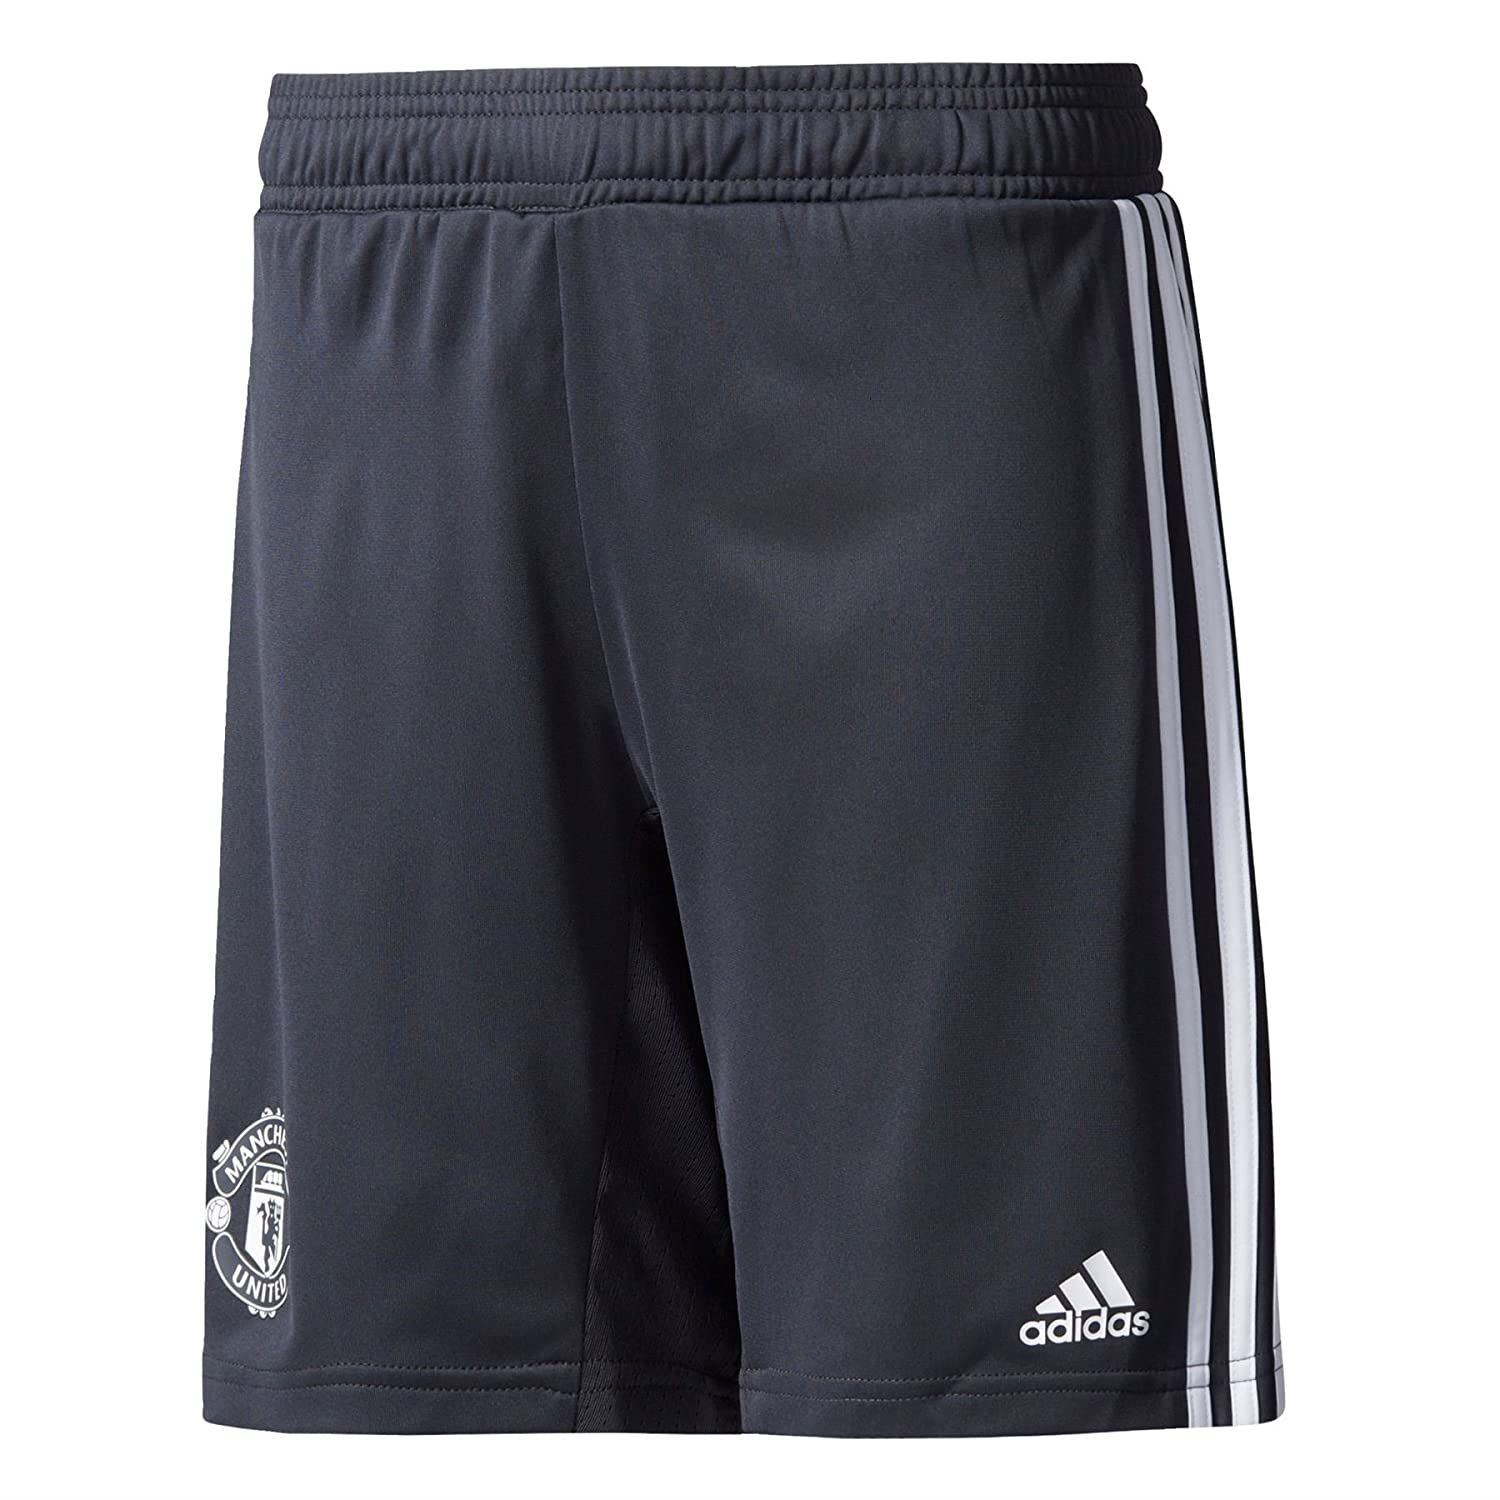 2017-2018 Man Utd Adidas Training Shorts (Night Grey) Kids B071GTT3MT XL Boys 28